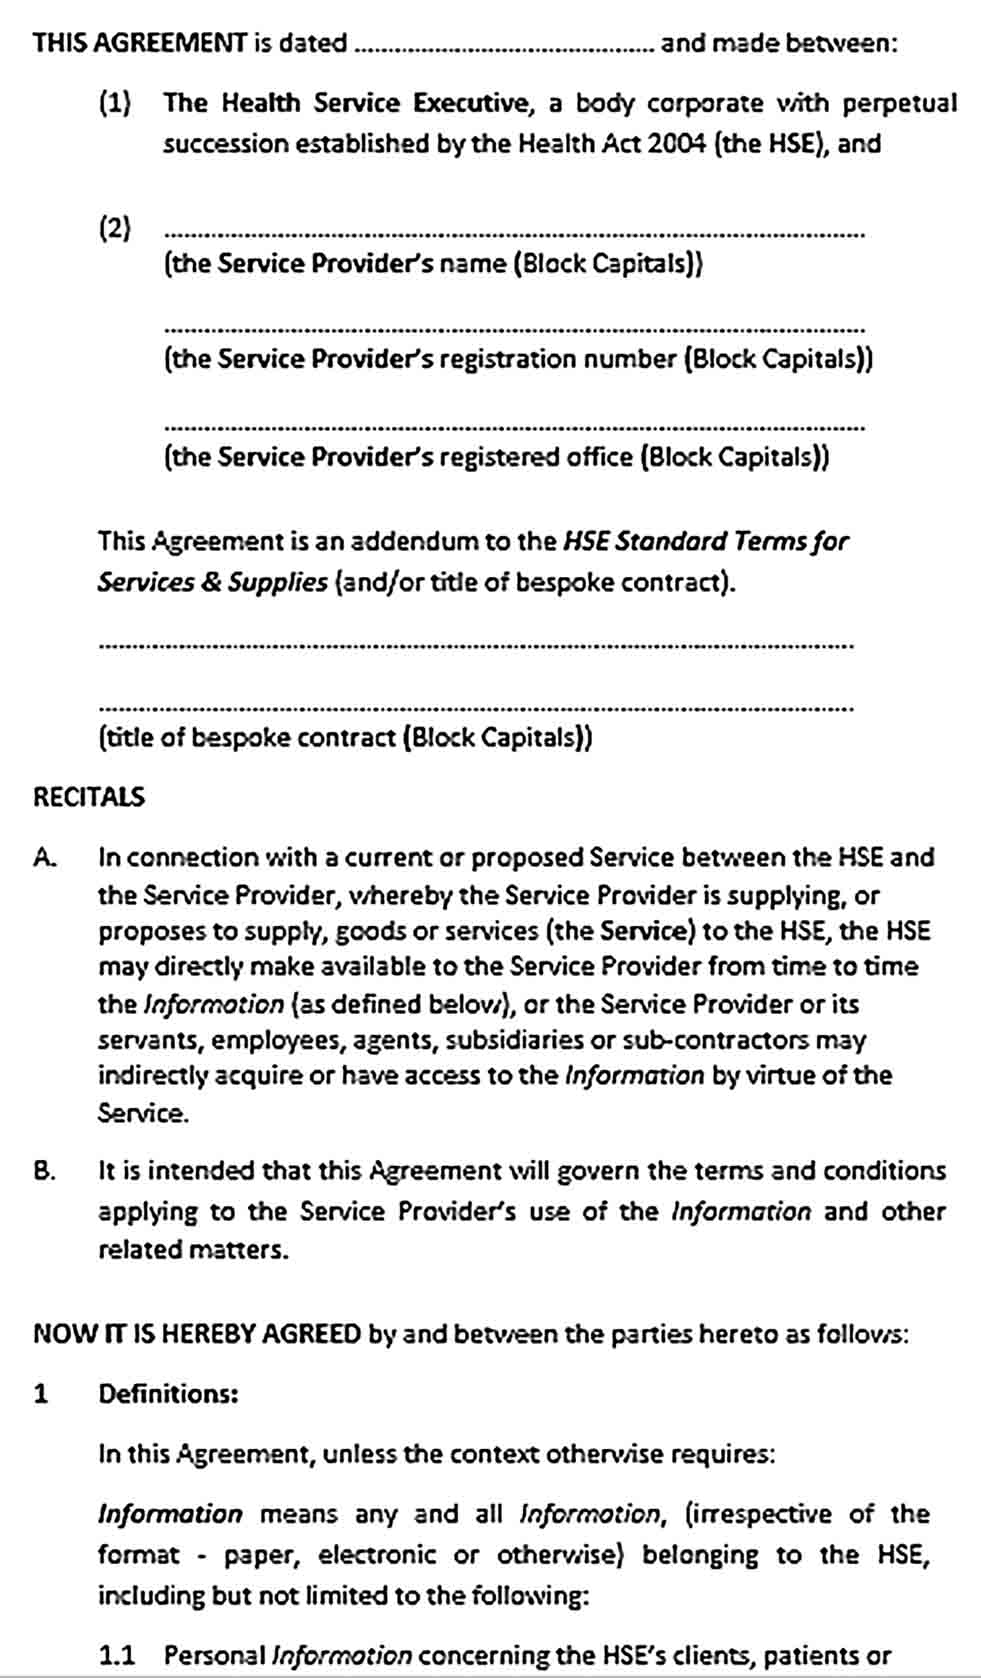 Sample Contractor Confidentiality Agreement for Data Service Provider